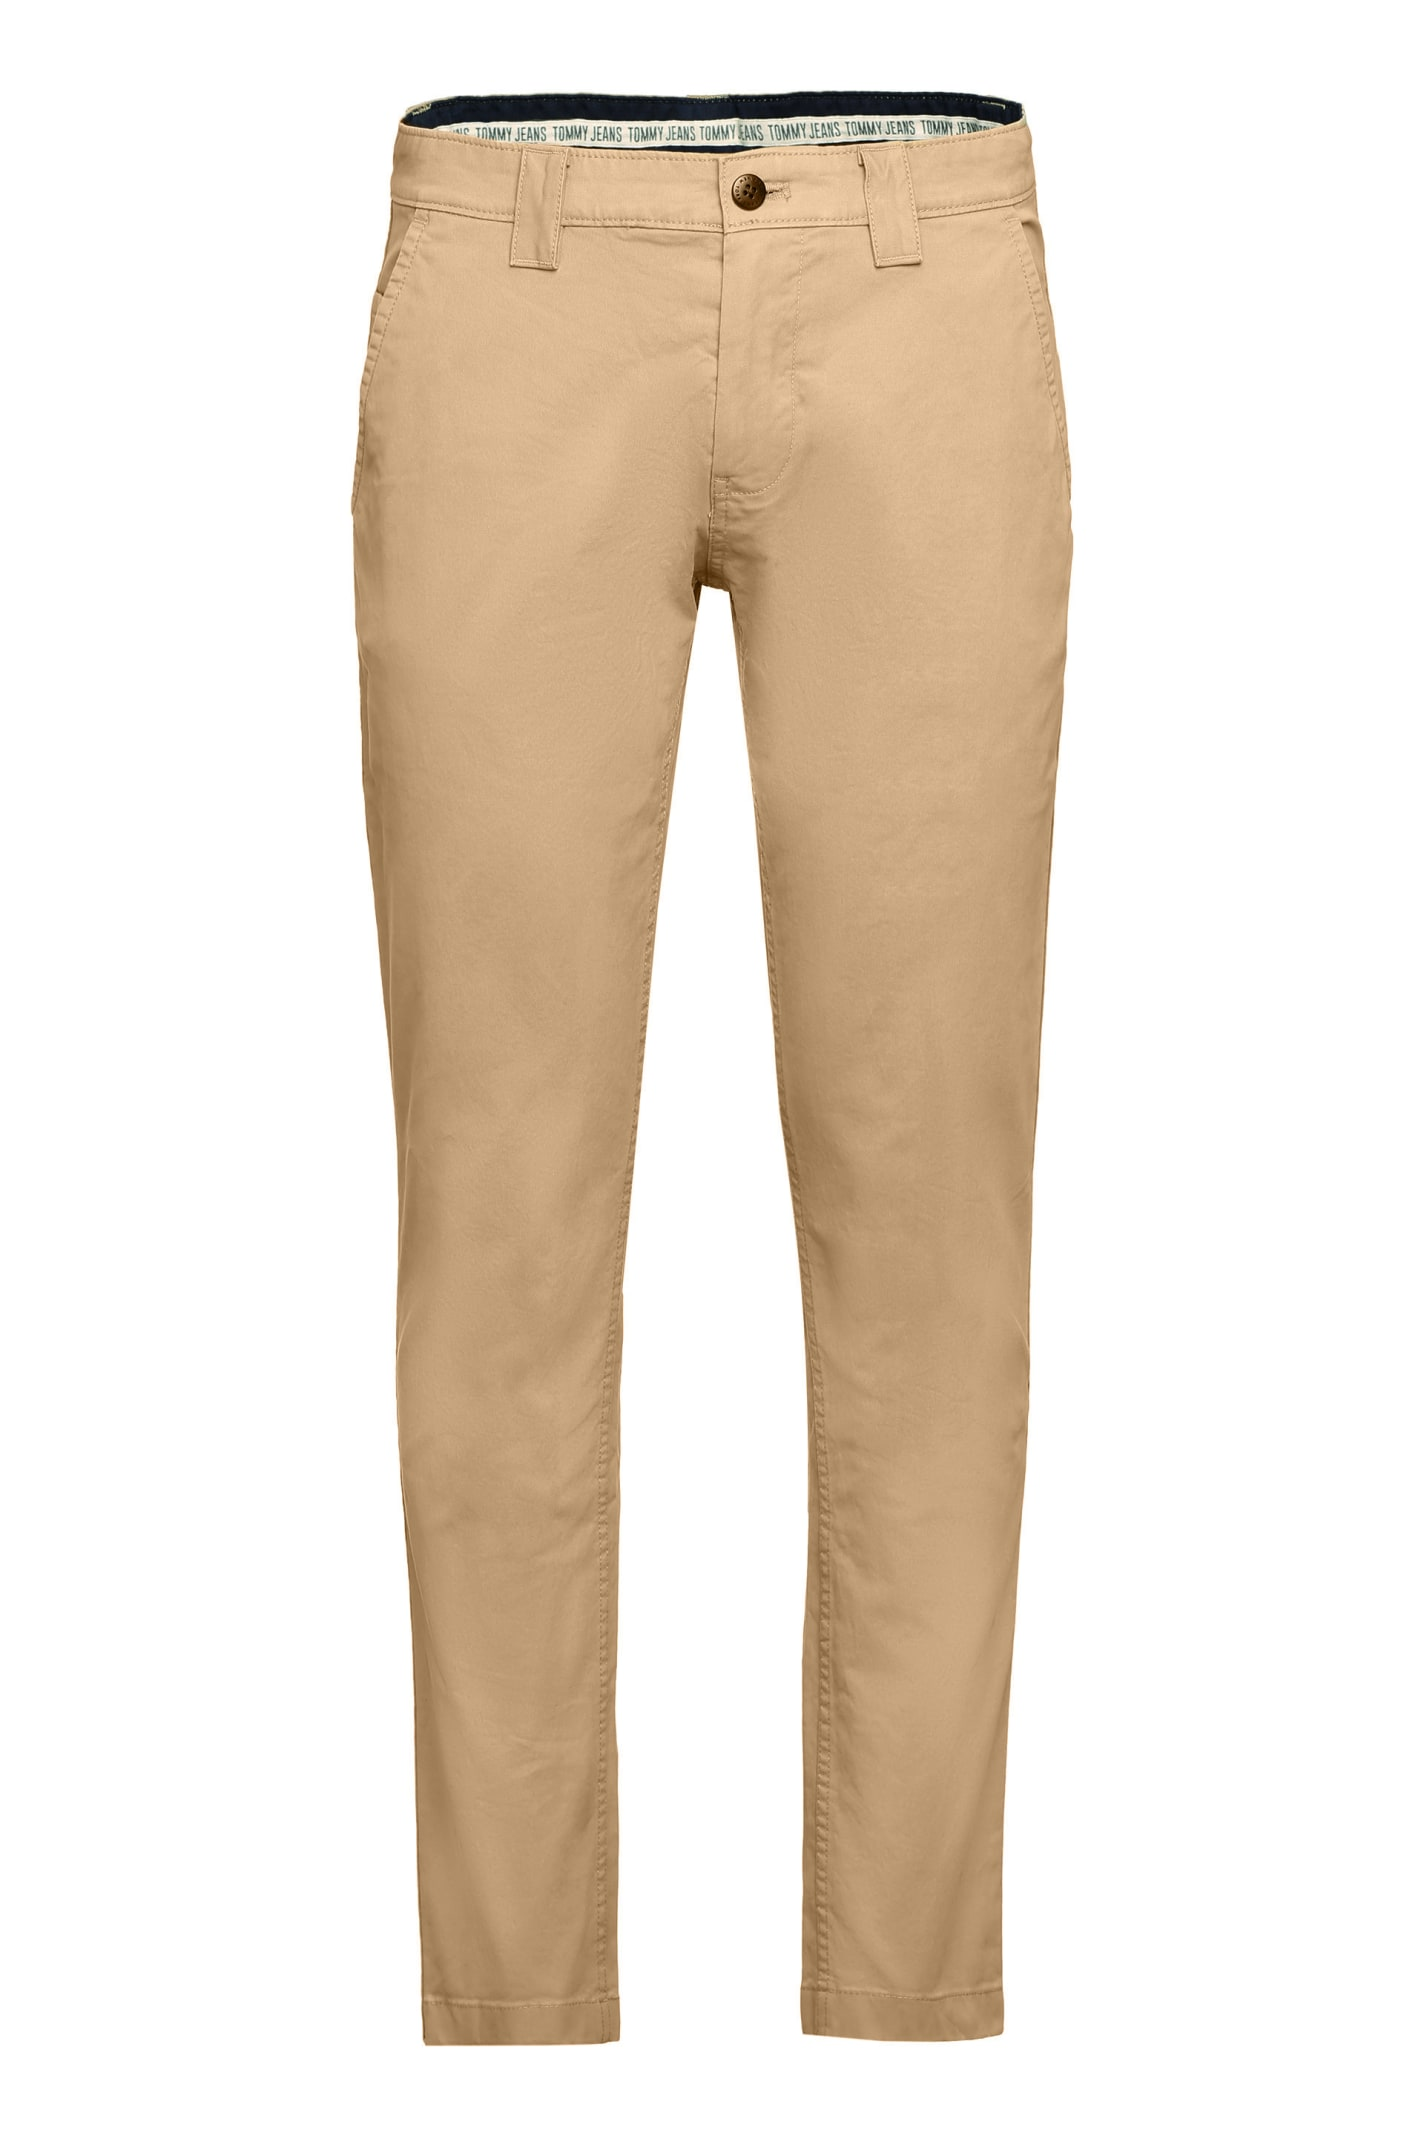 Tommy Jeans Scanton Stretch Cotton Chino Trousers